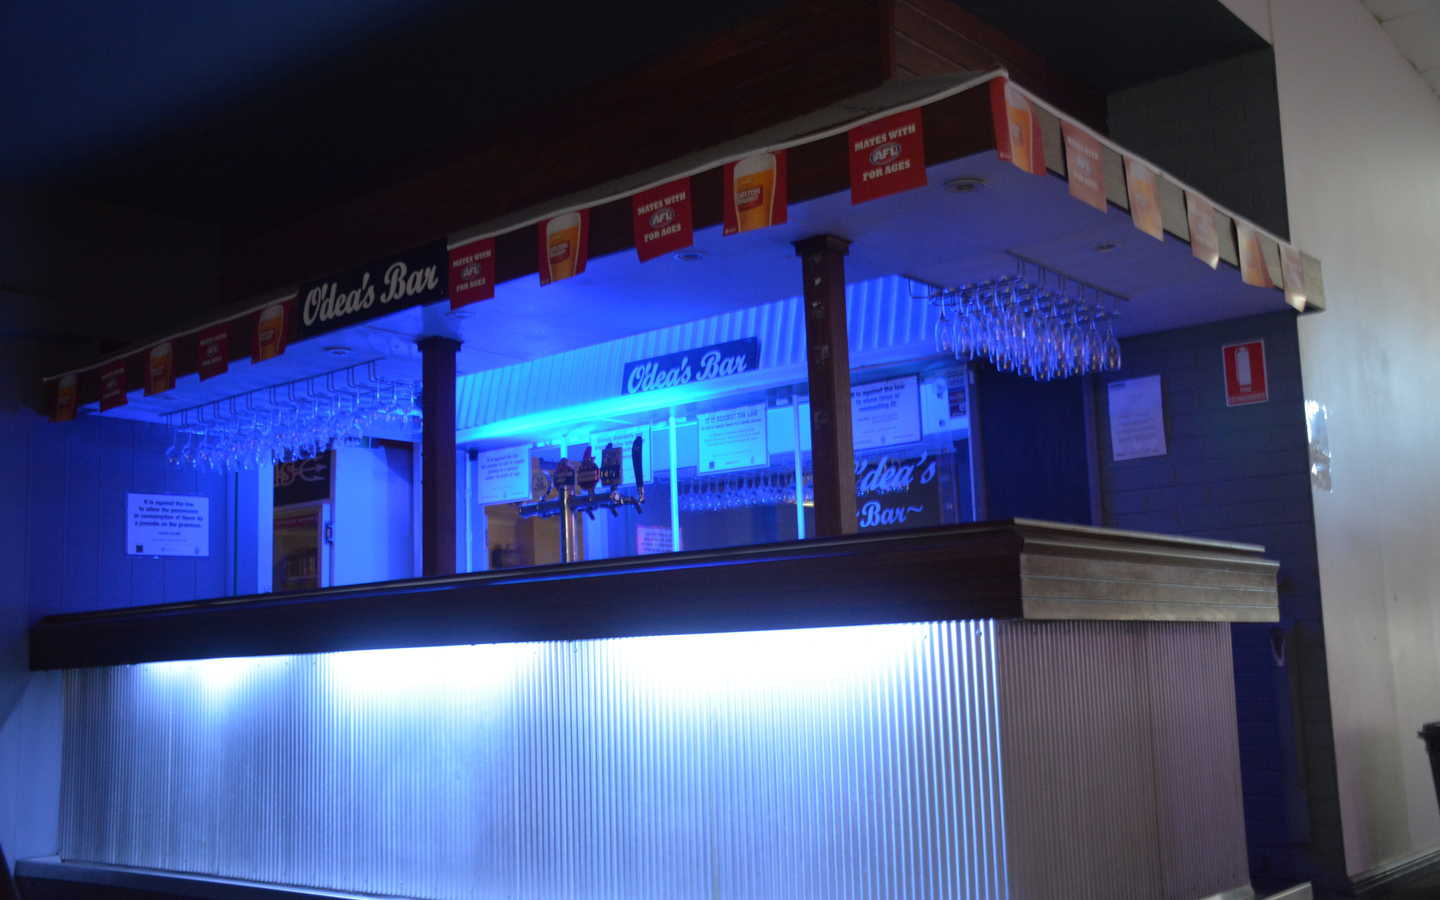 Lathlain Function Centre - Odea's Bar